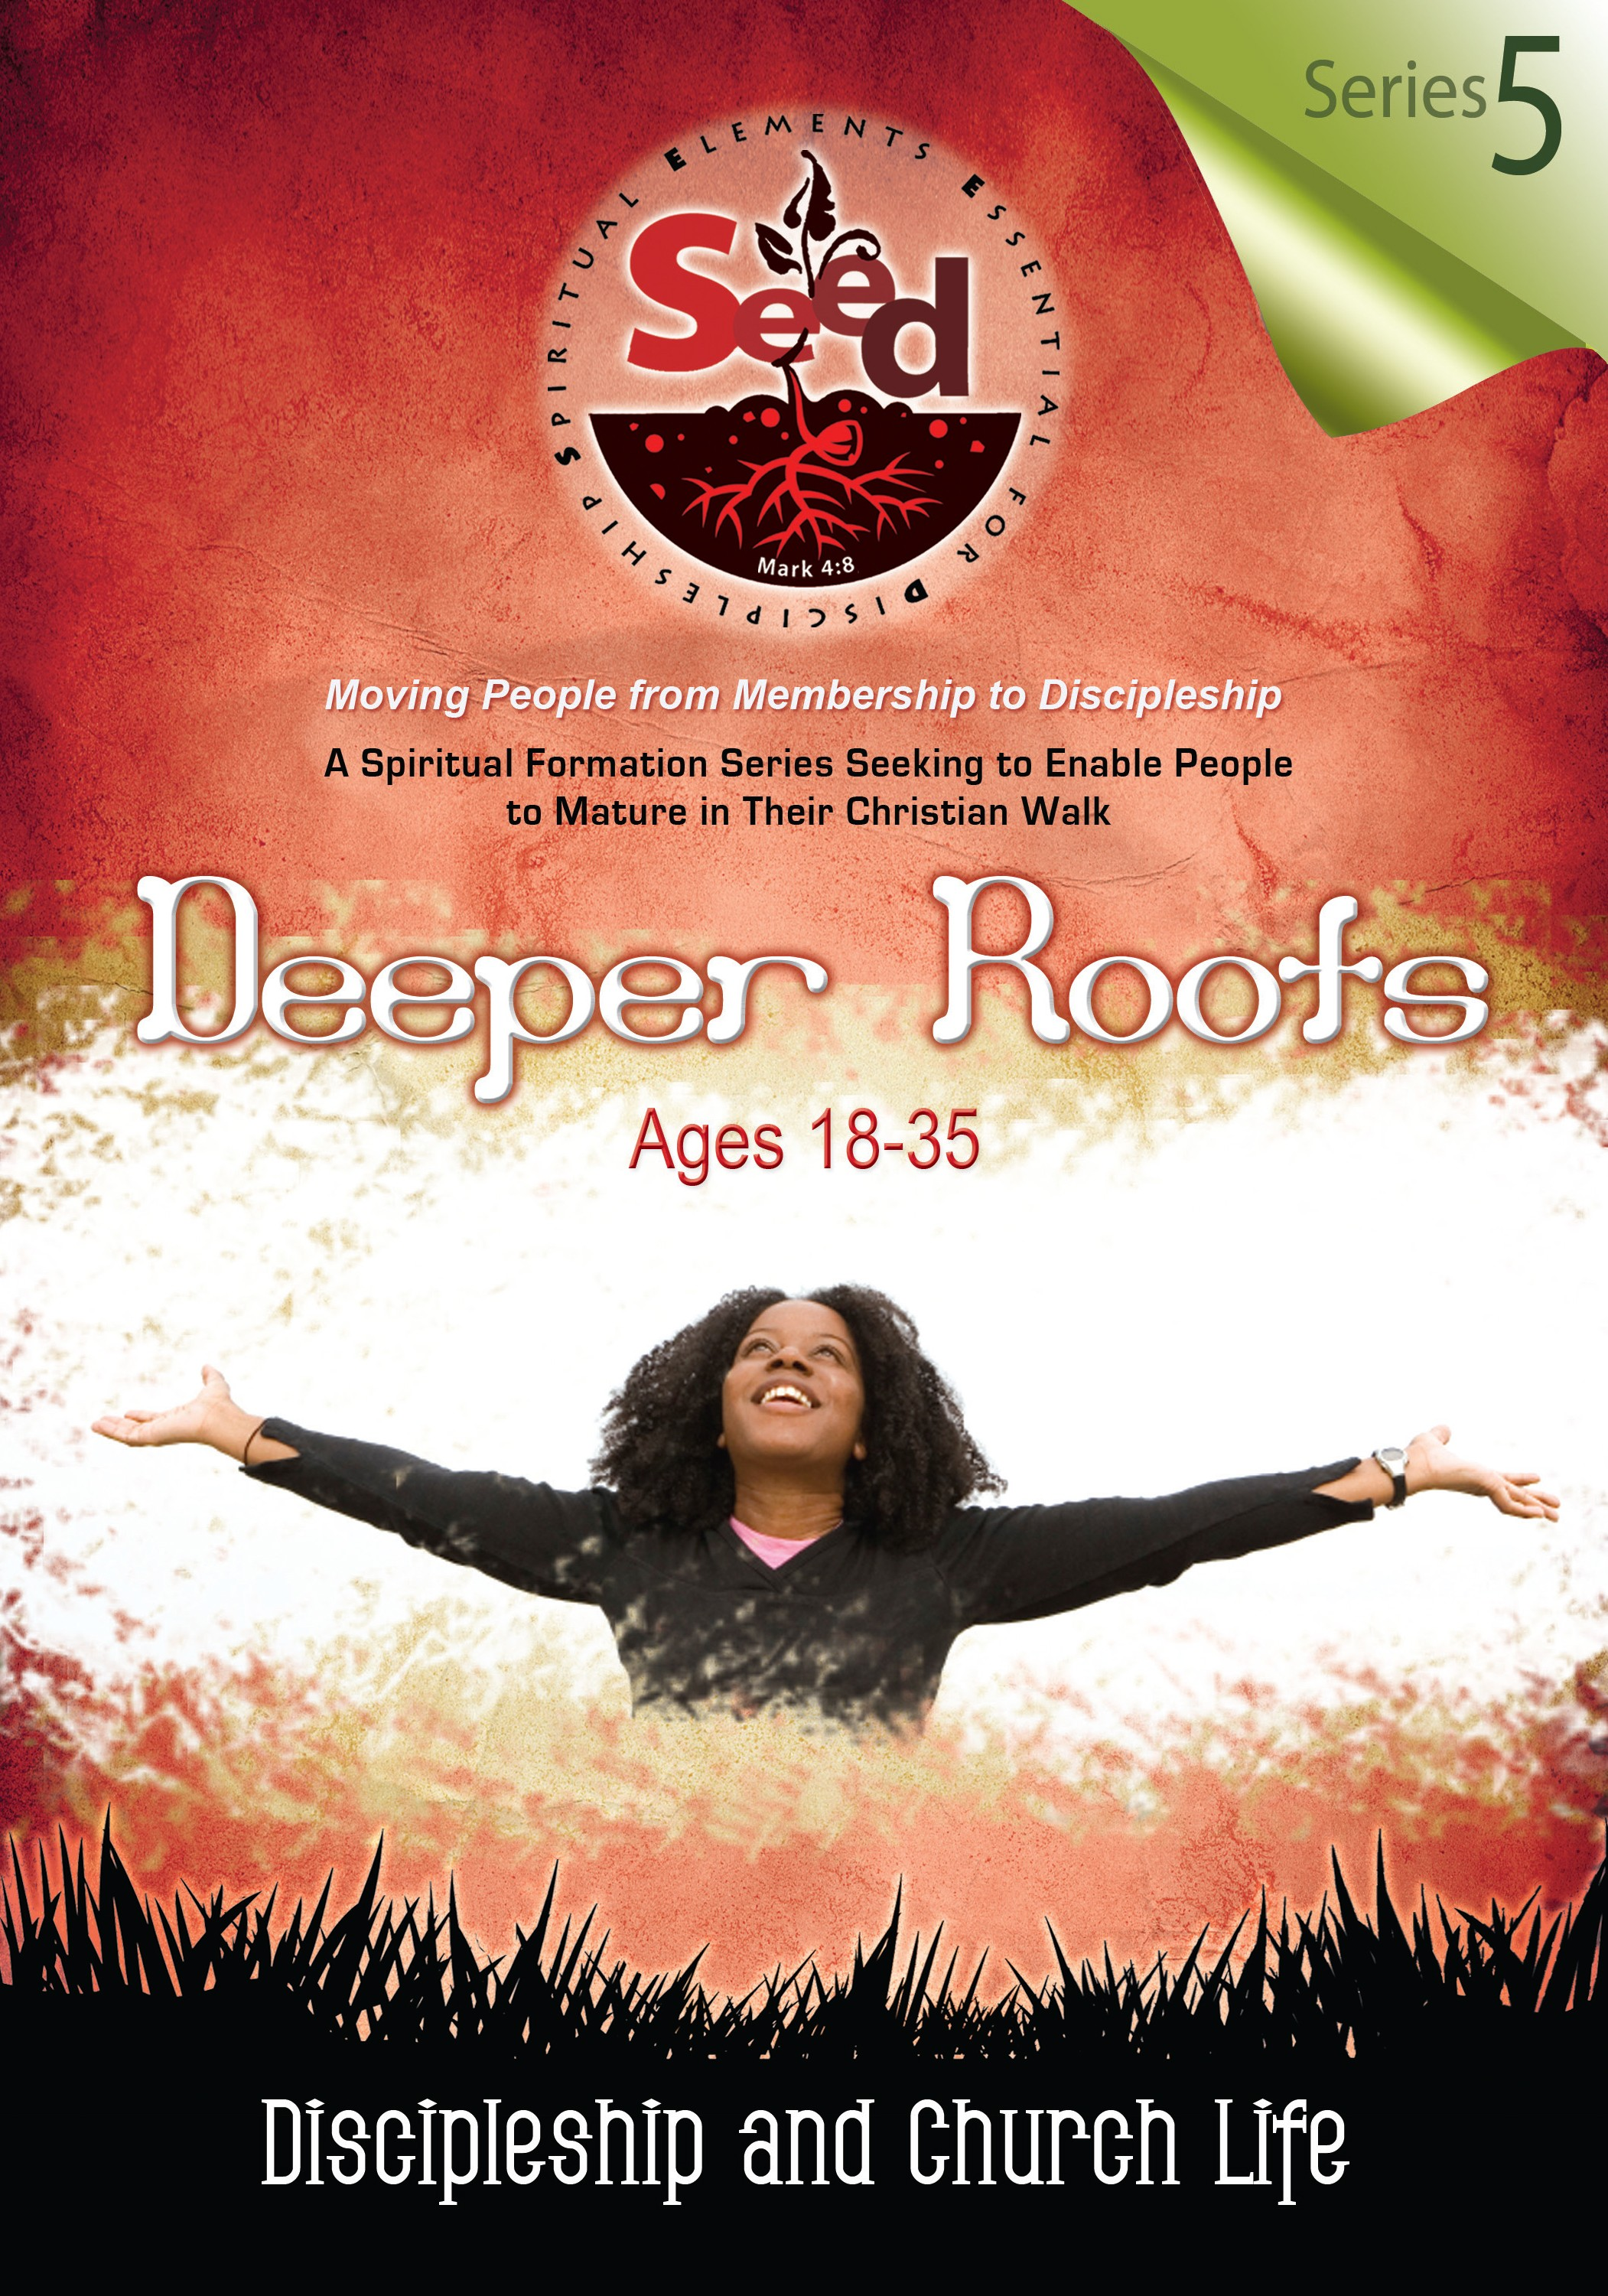 SEED Deeper Roots (Ages18-35): Series 5: Discipleship and Church Life